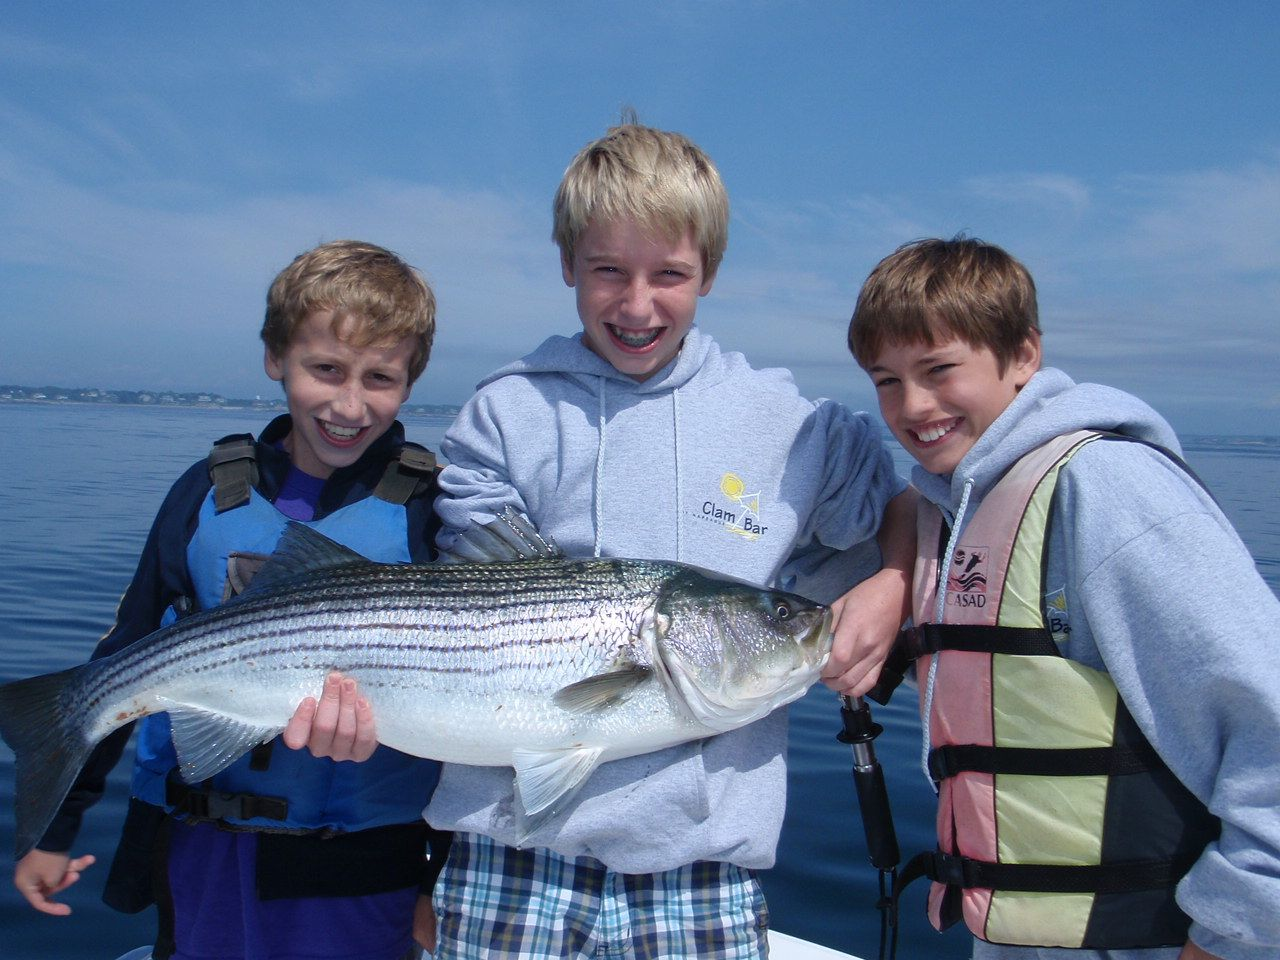 Image of a large striped bass caught in Kids fishing Camp off Marblehead